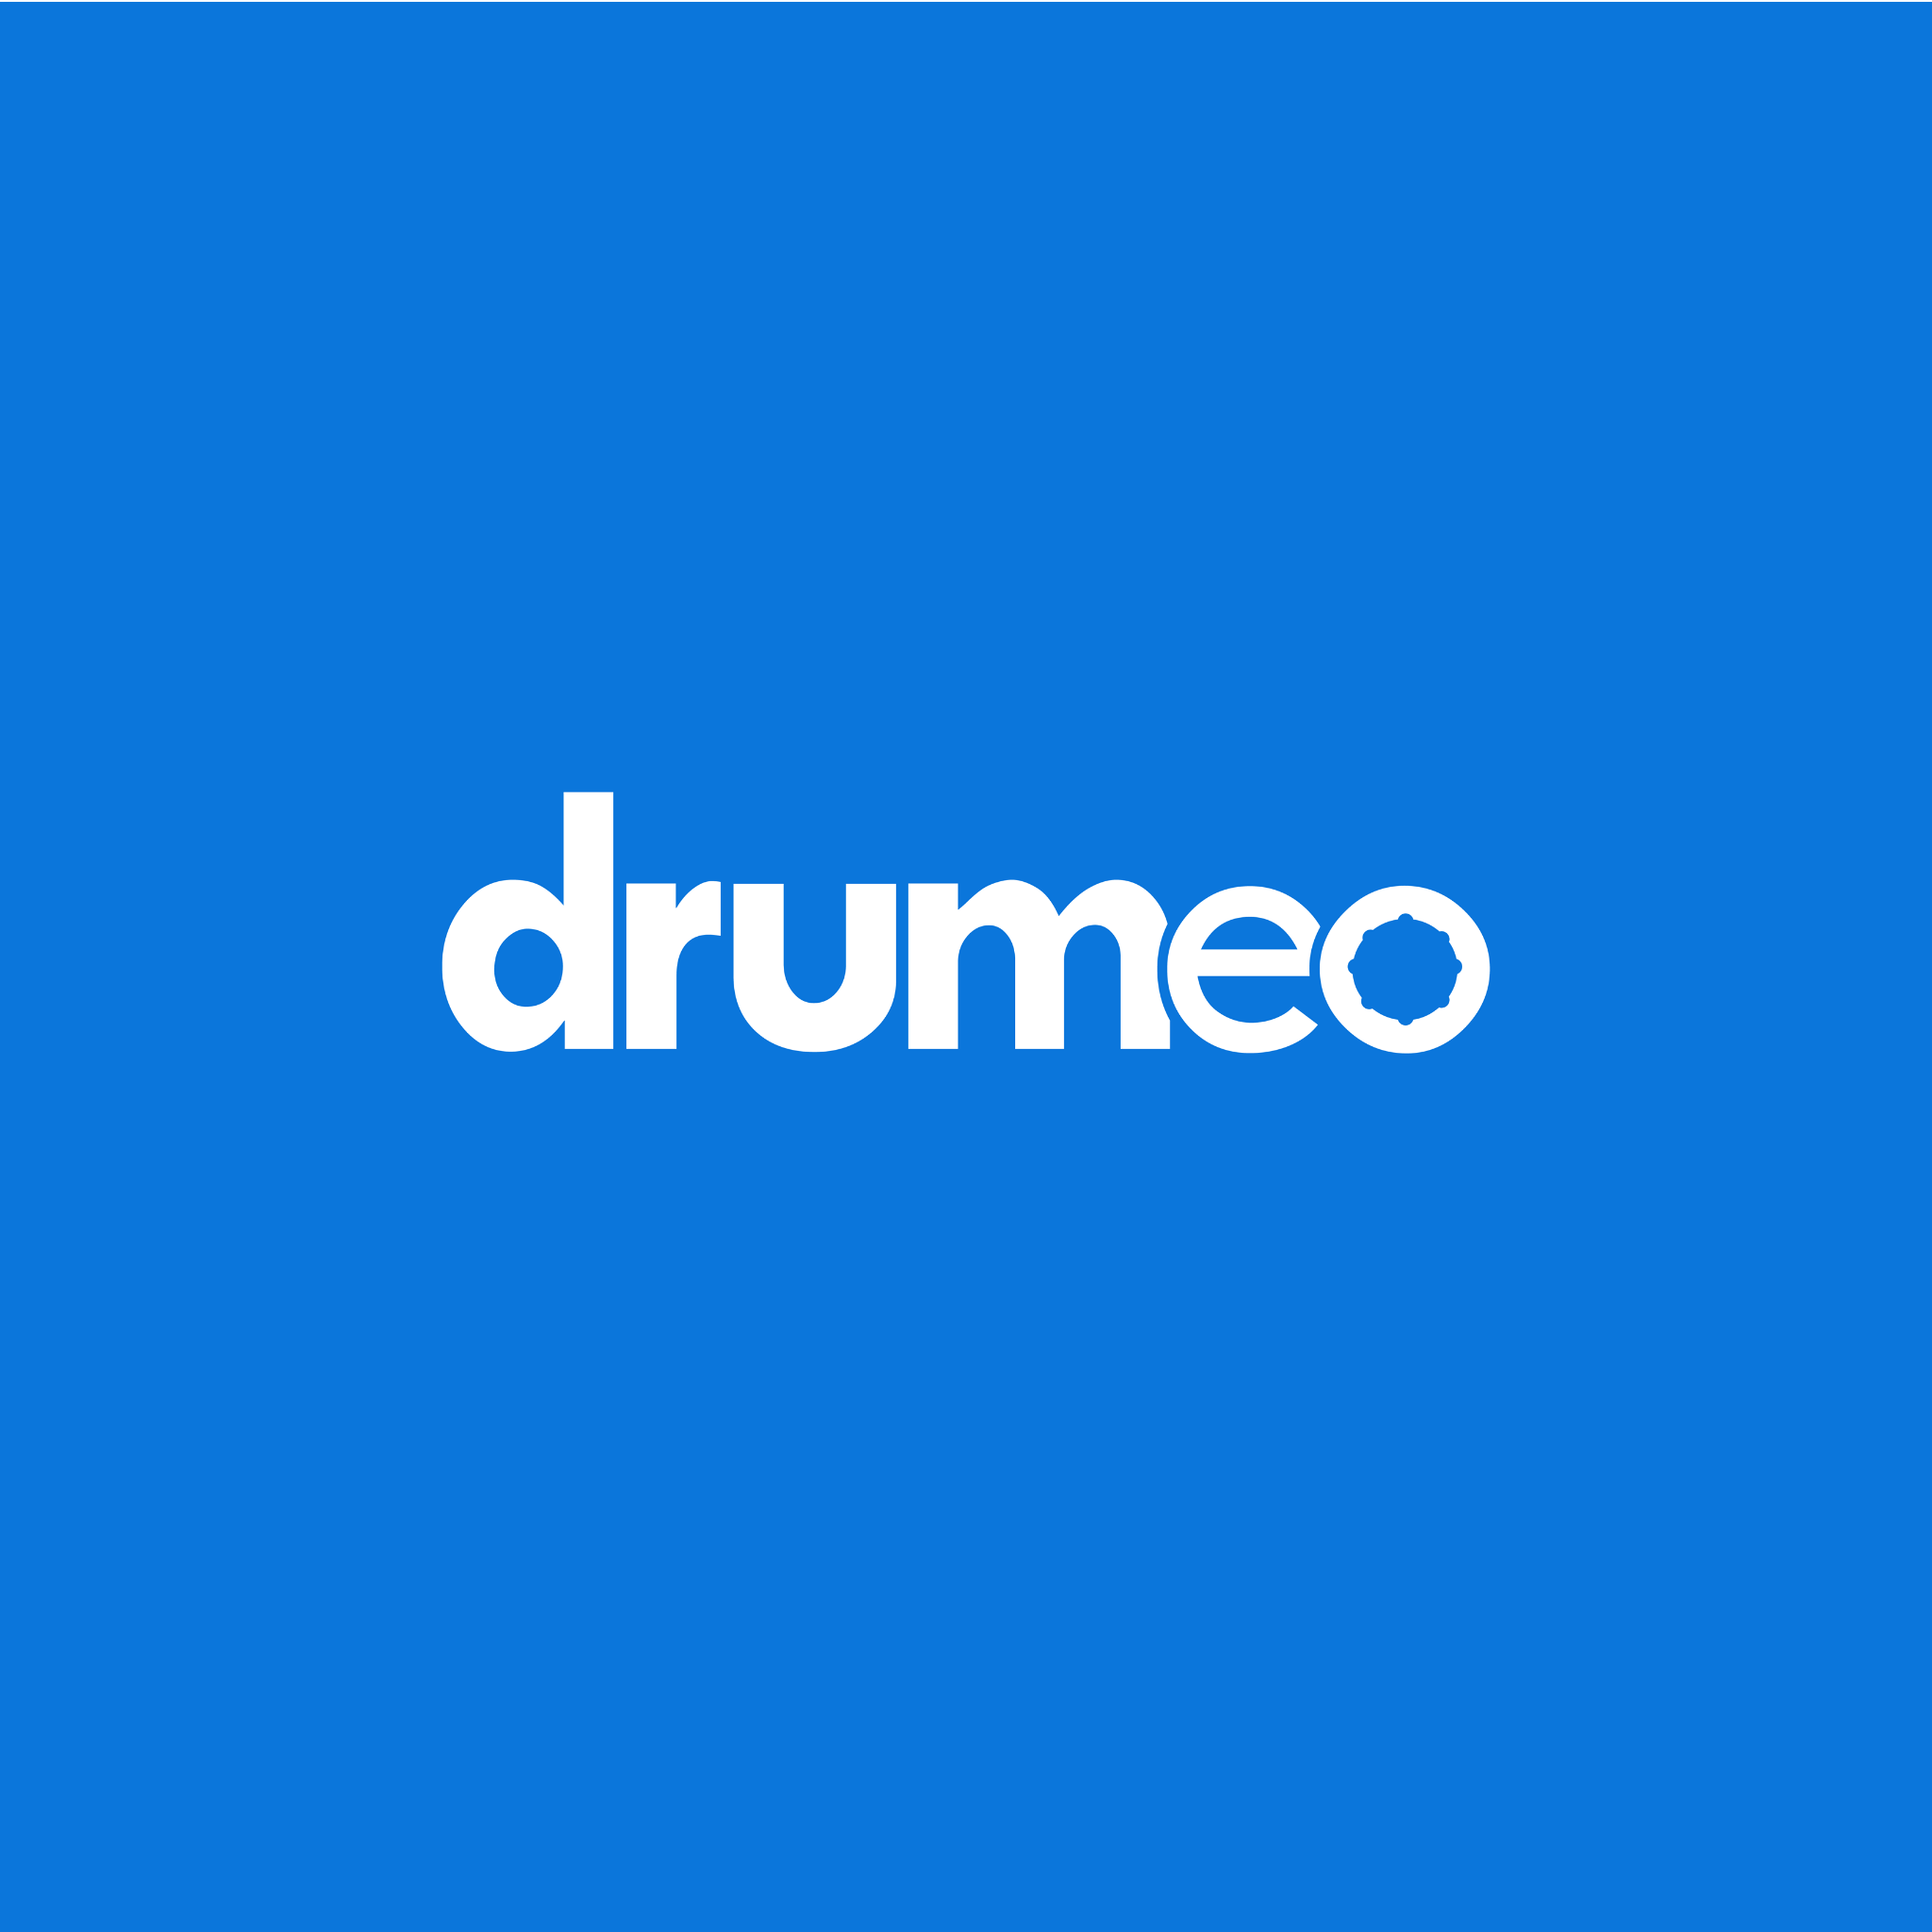 drumeo, the best online drum lessons.